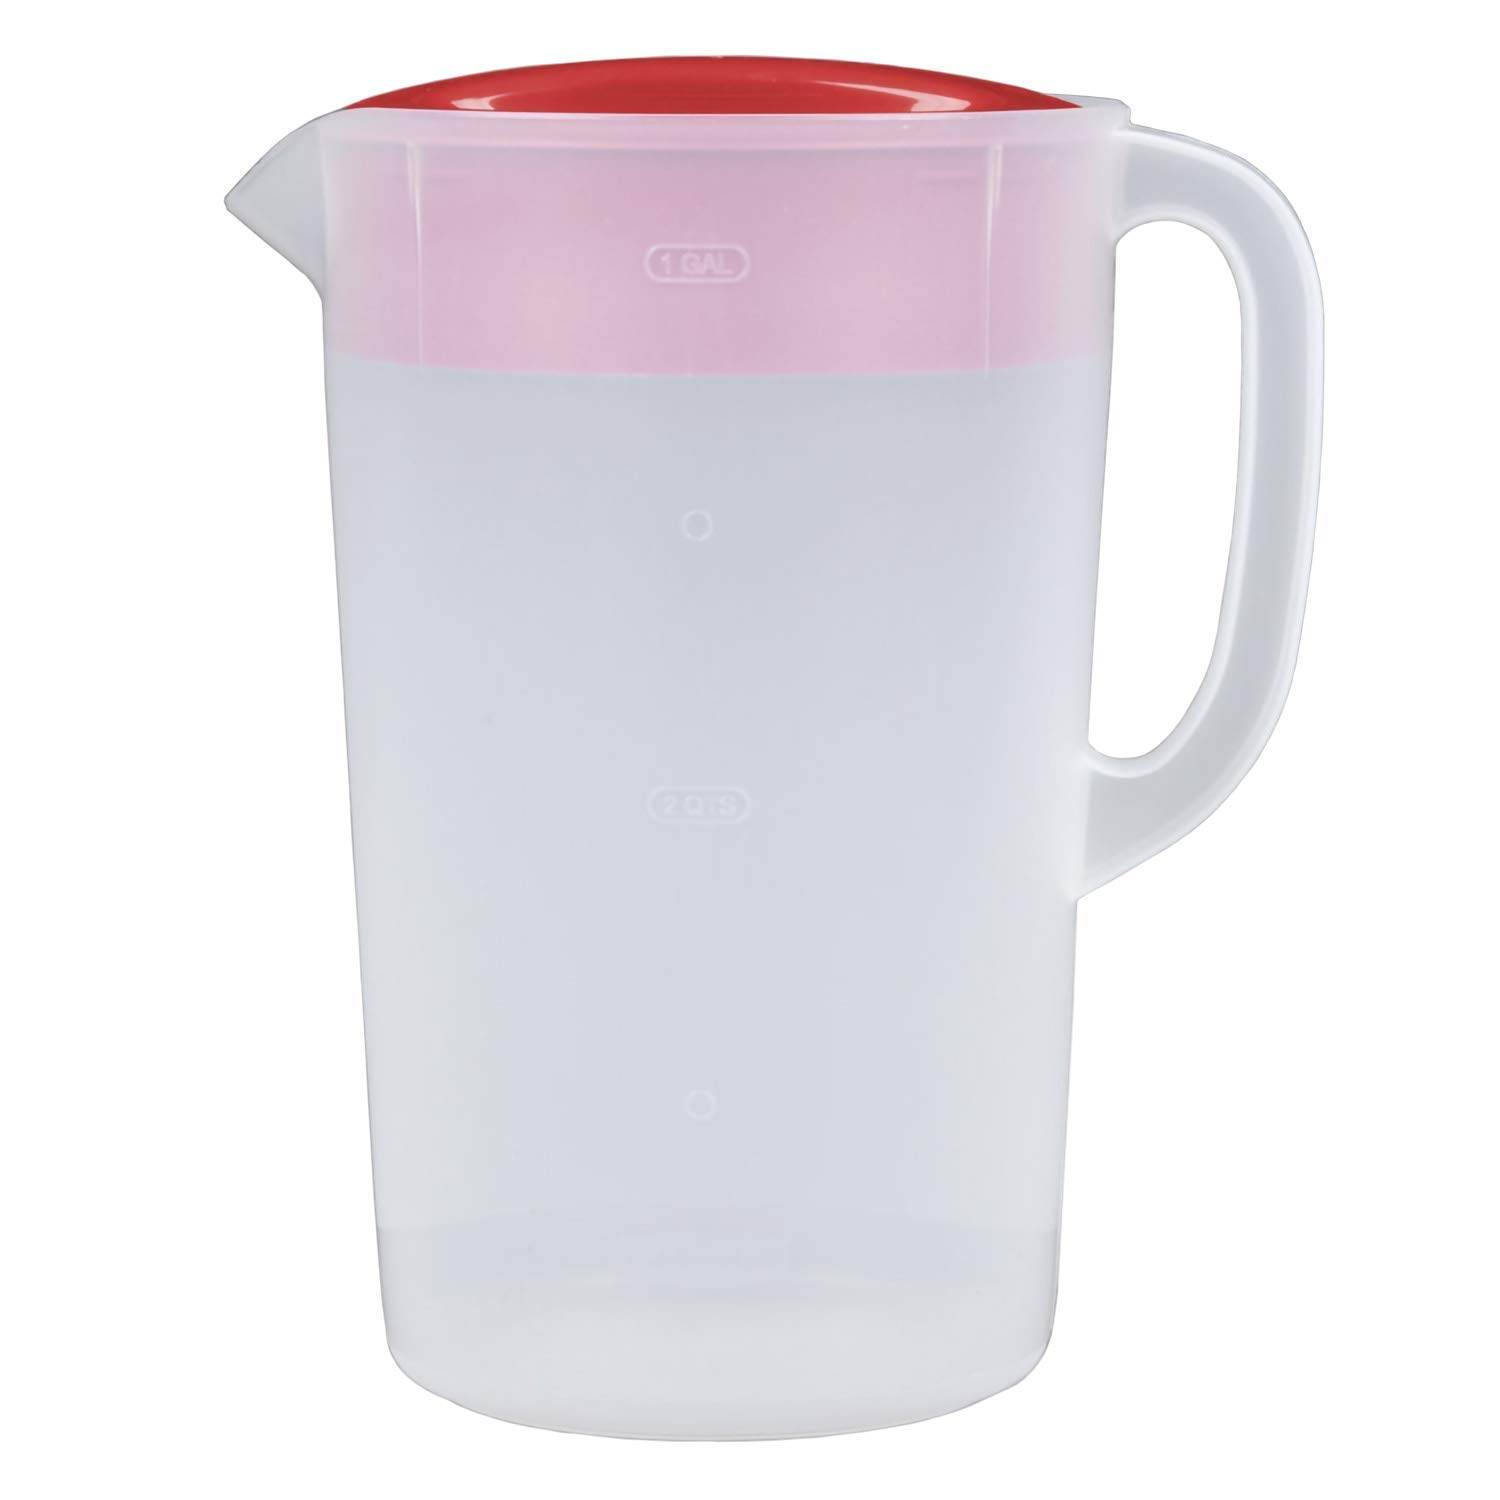 Rubbermaid 1 Gallon Classic Pitcher, Pack of 2 Red/Clear Pitchers